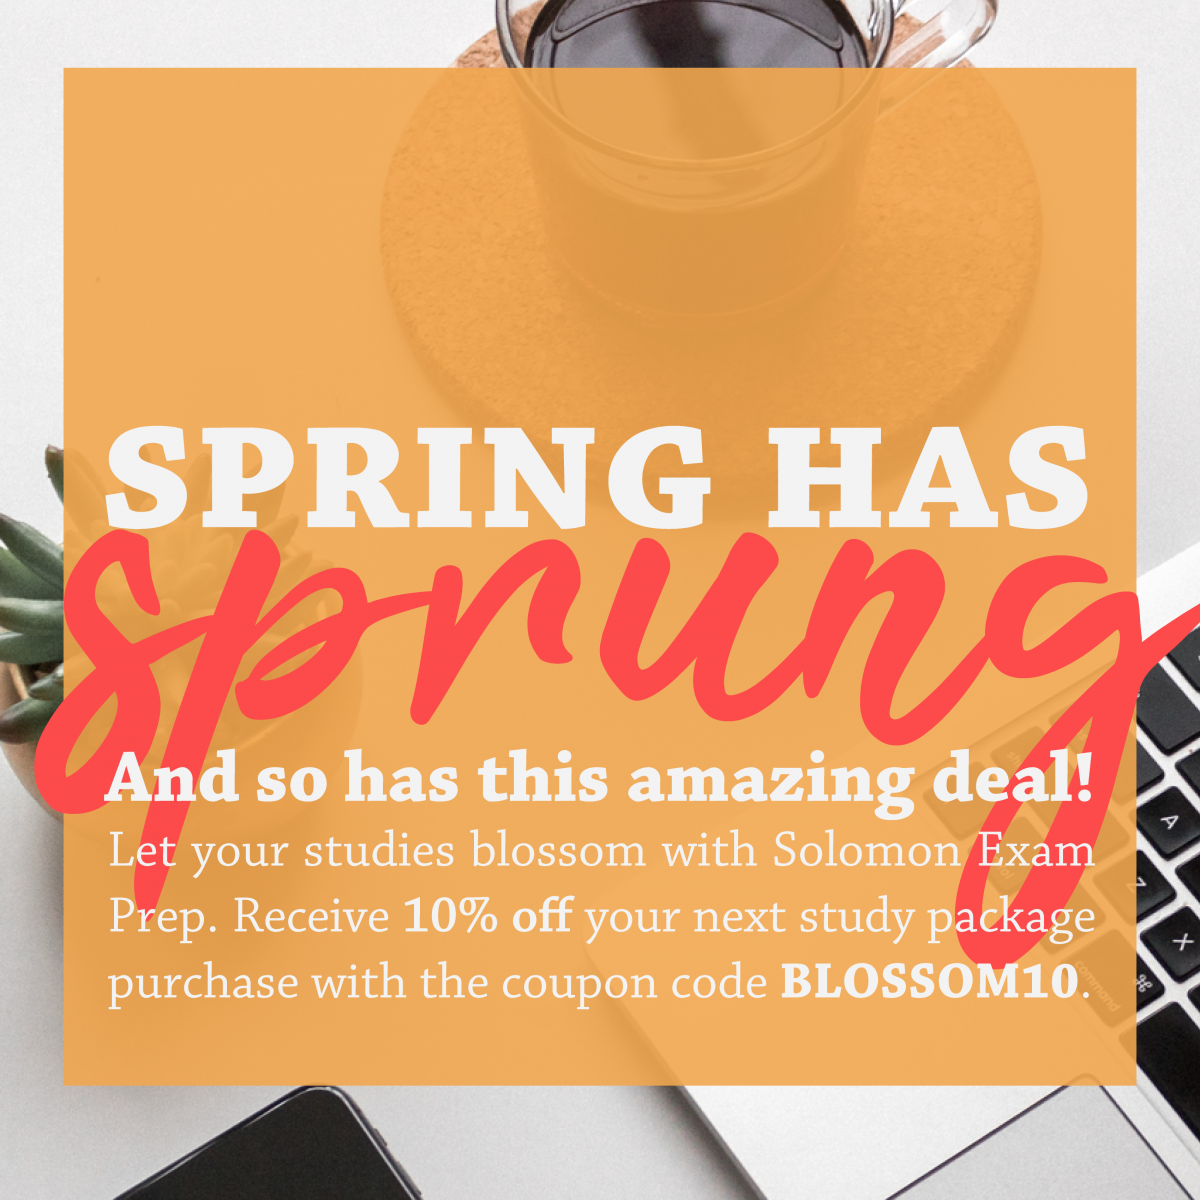 Spring has sprung and so has this amazing deal! Let your studies blossom with Solomon Exam Prep. Receive 10% off your next study package purchase with the coupon code BLOSSOM10.